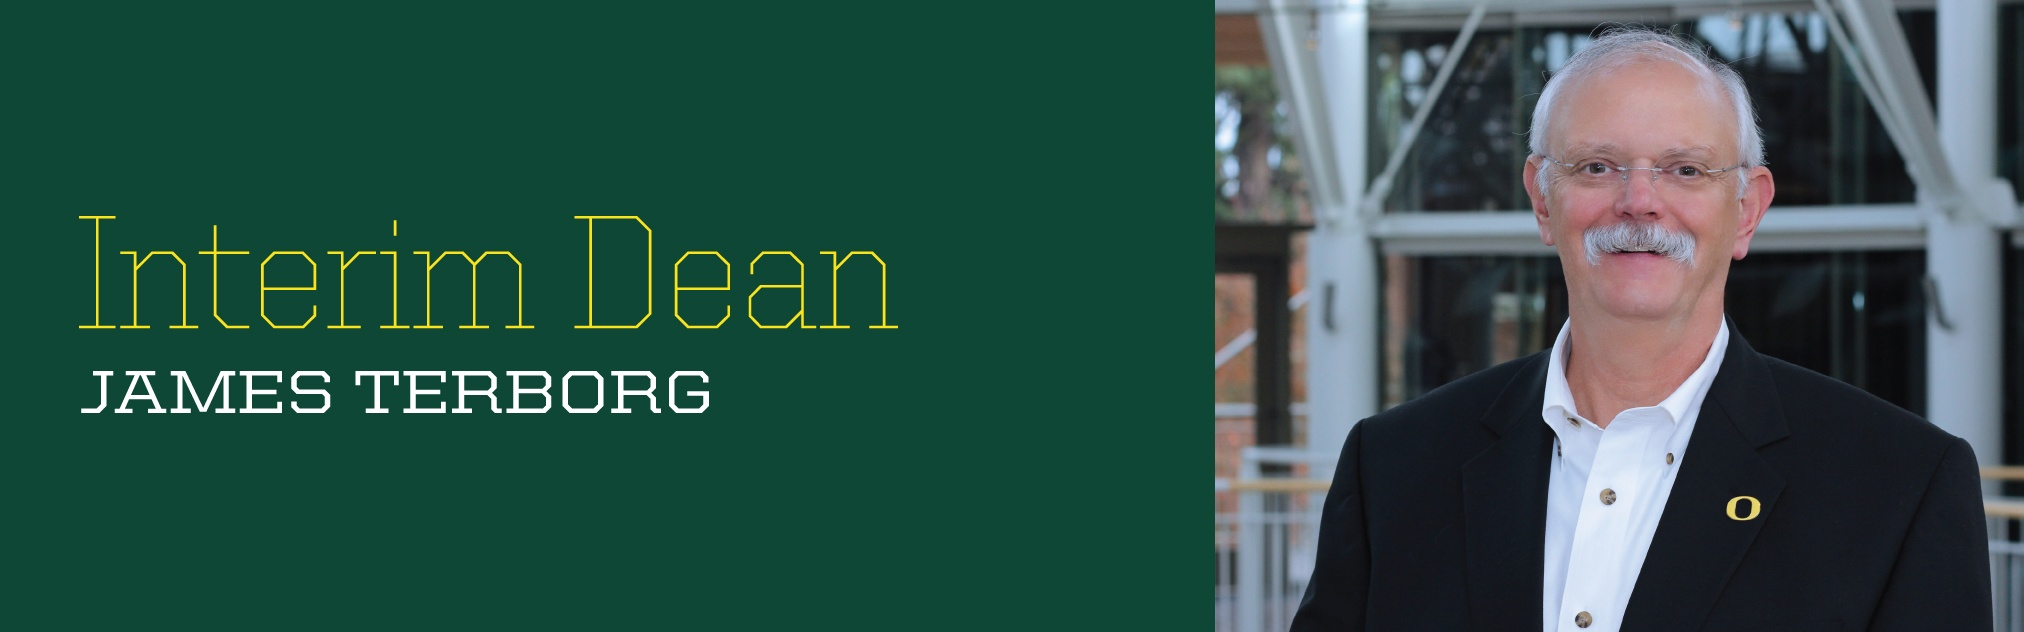 James Terborg Appointed Interim Dean of the UO Lundquist College of Business